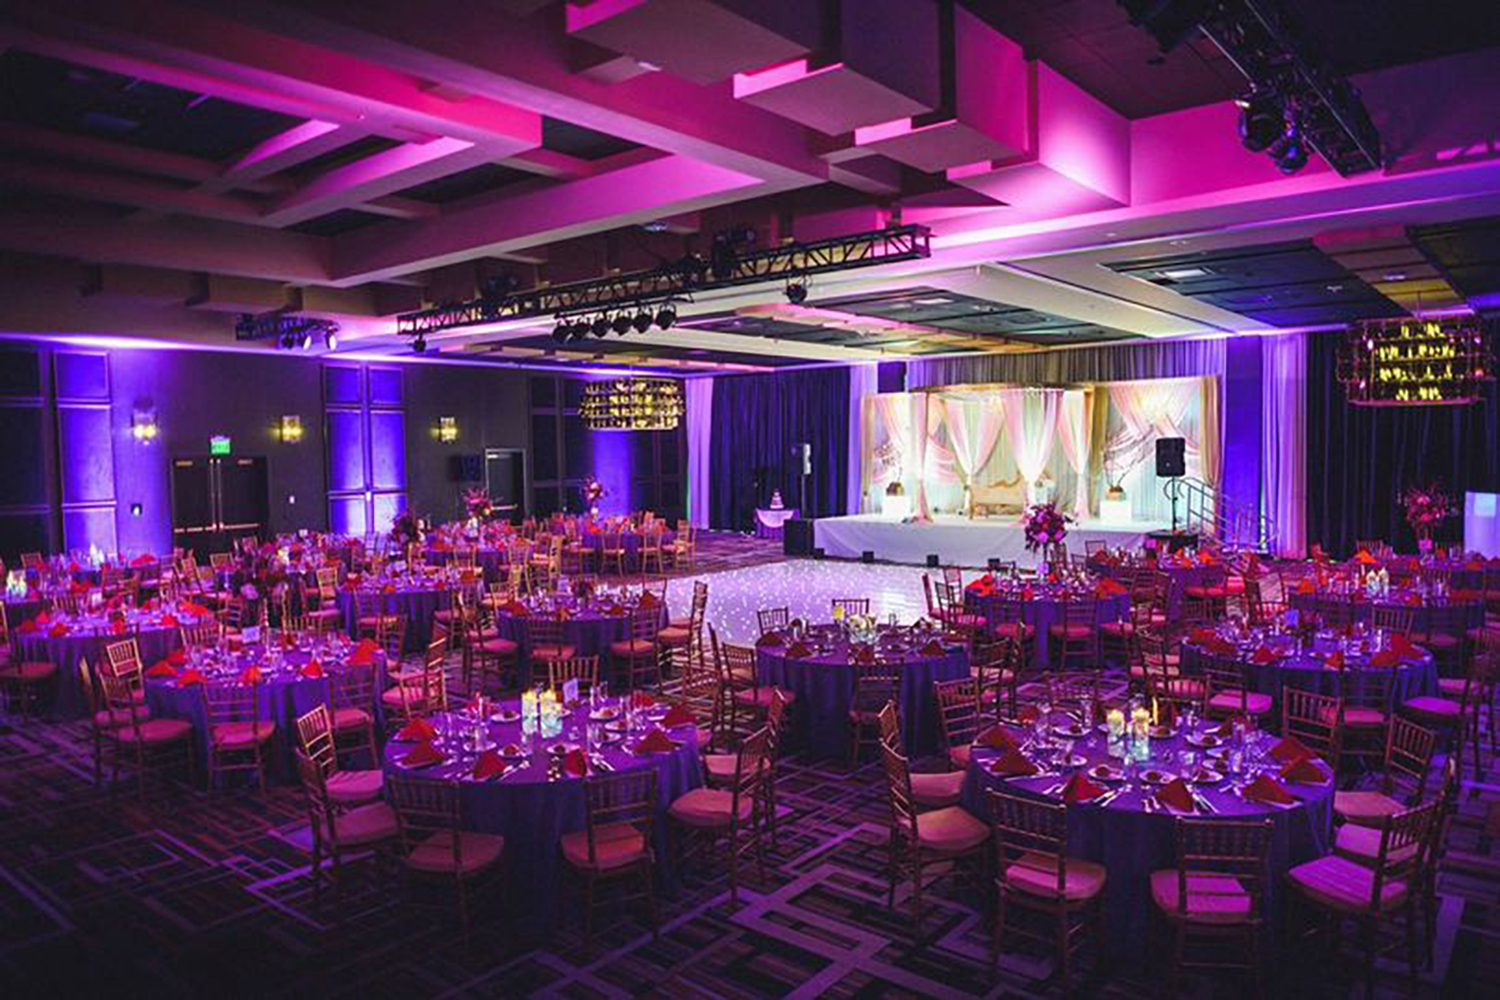 Rivers Casino wedding ballroom located in Philadelphia